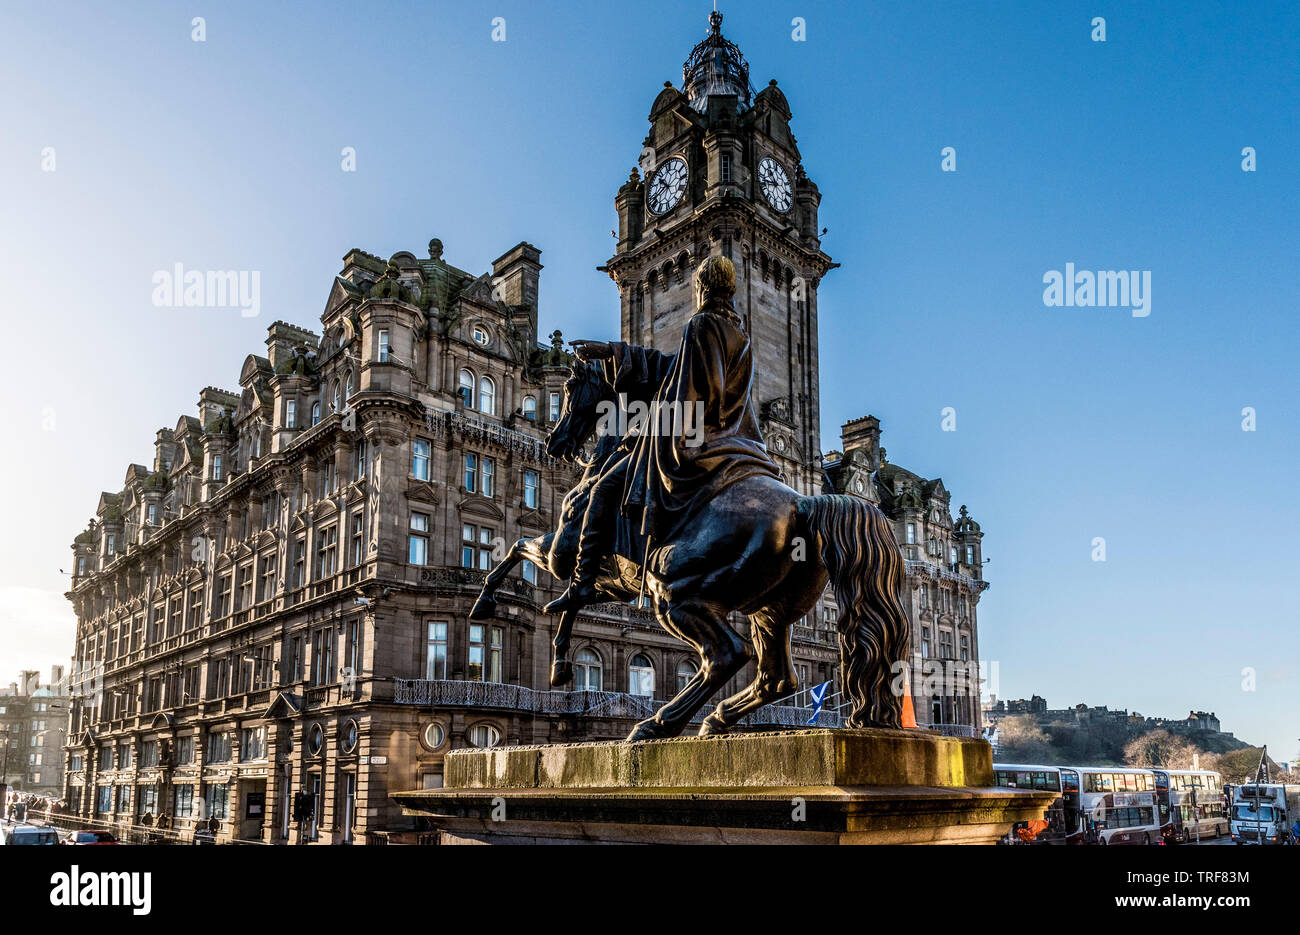 Duke of Wellington statue, Waterloo Place with Balmoral Hotel - Stock Image